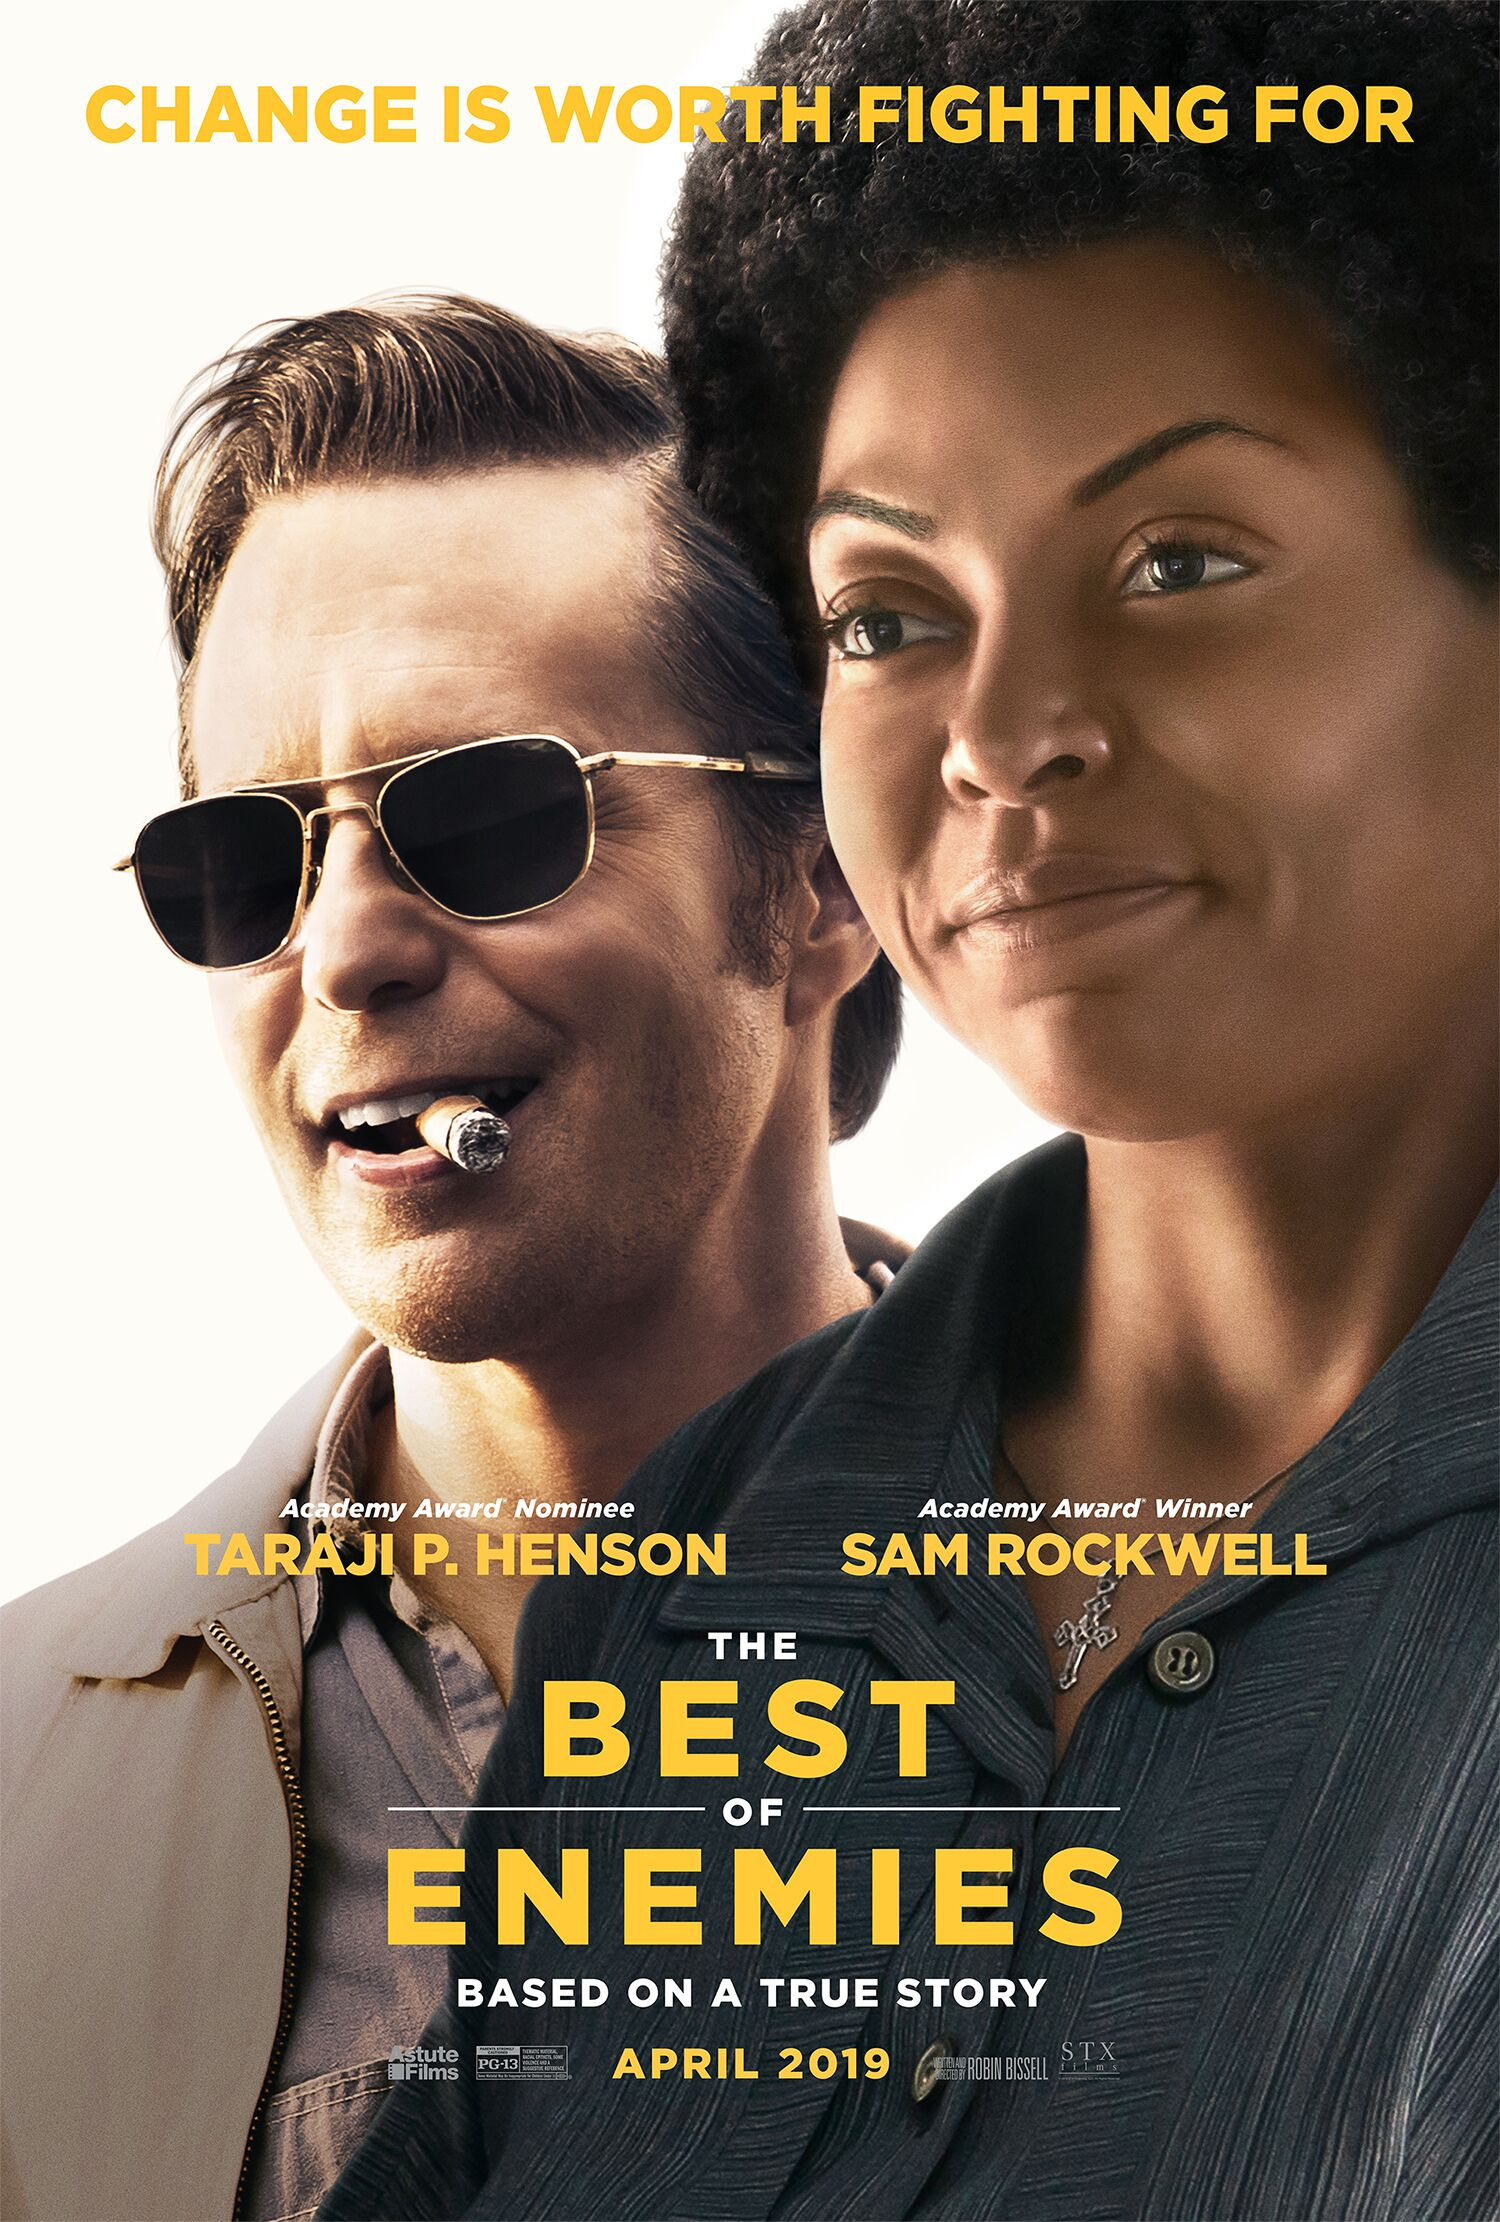 The Best of Enemies Debut trailer and expectations